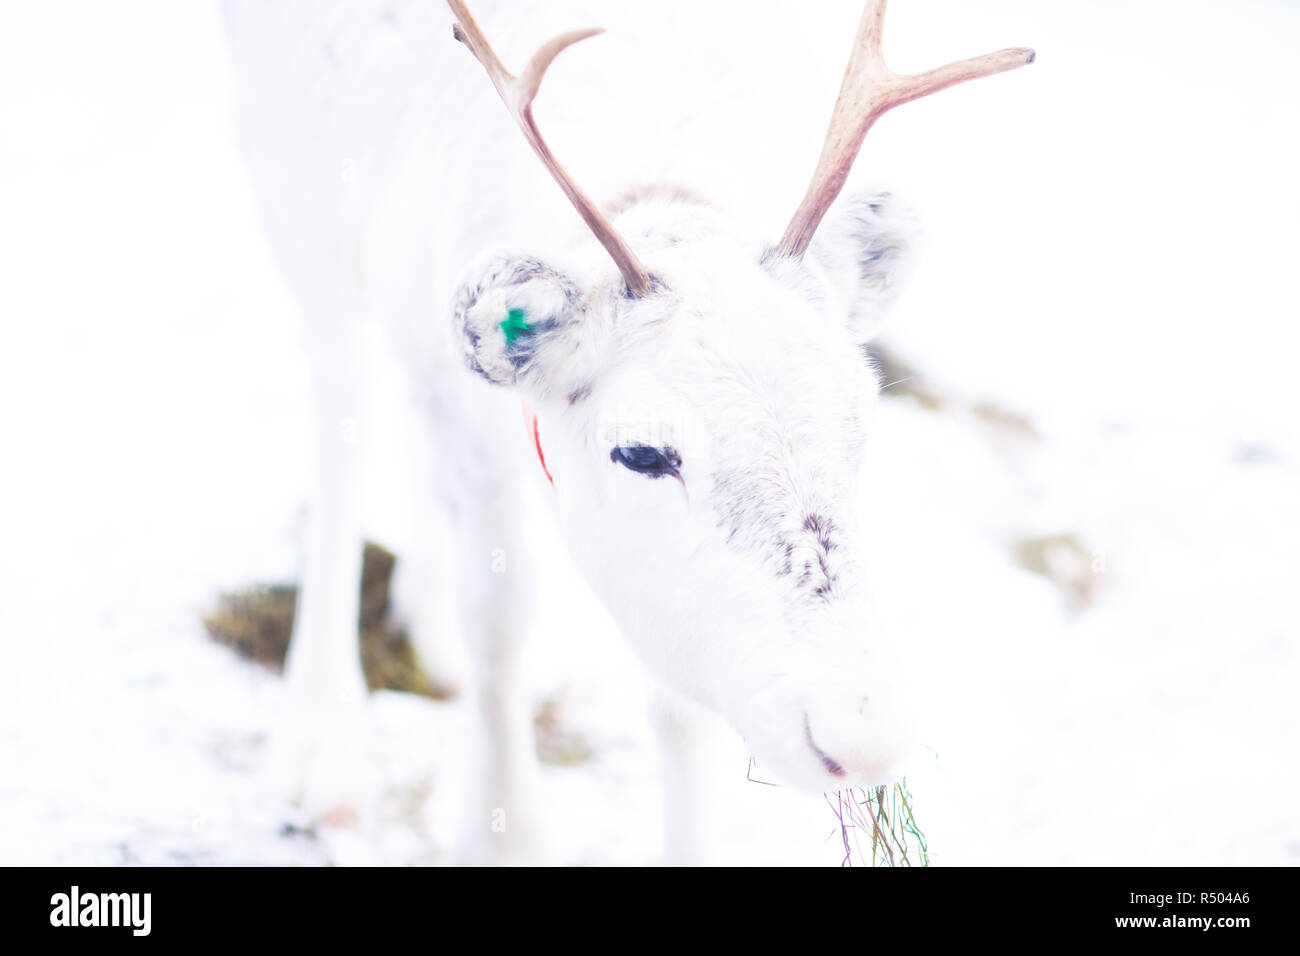 Group herd of caribou reindeers pasturing in snowy landscape, Northern Finland near Norway border, Lapland - Stock Image